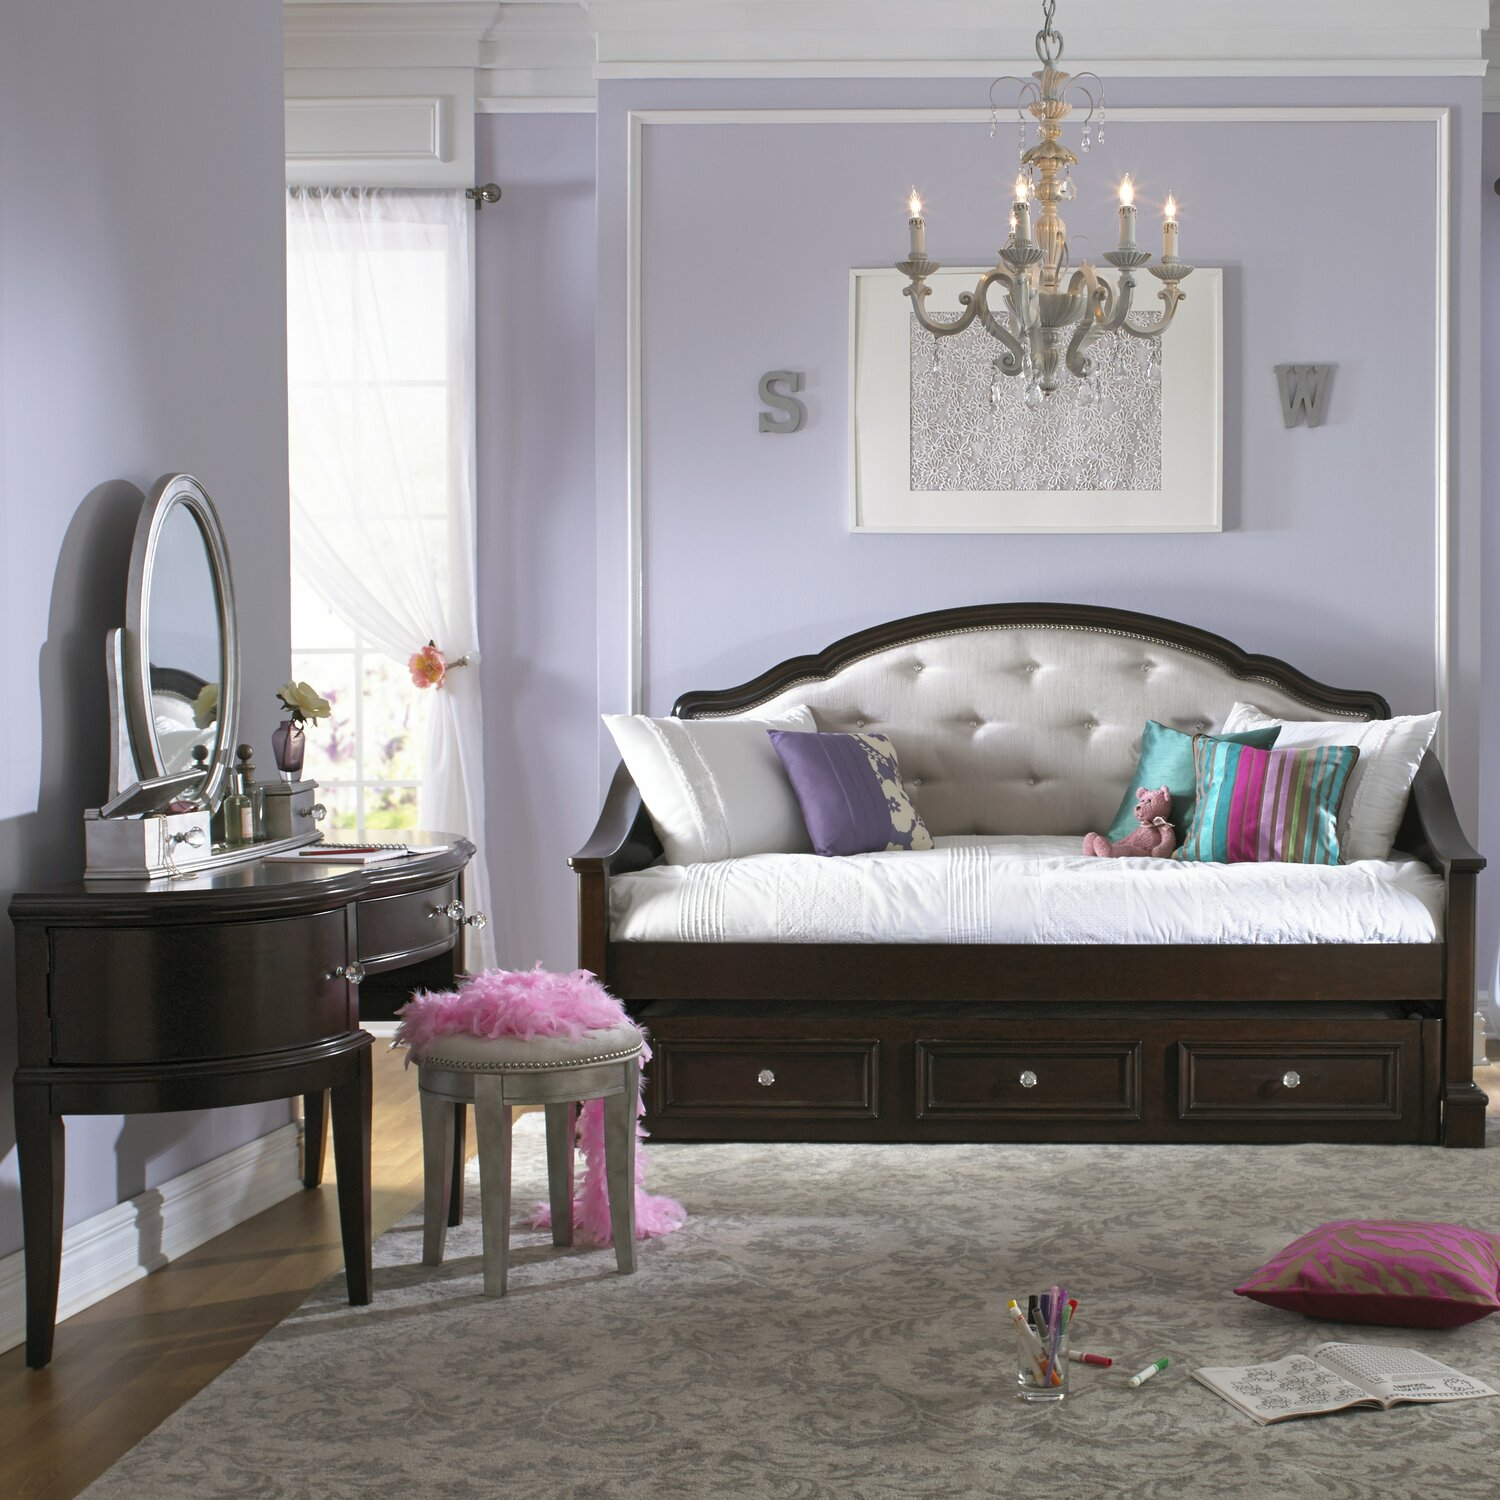 A Furniture Company Displays Bedroom Sets Which Require 21 Square ...